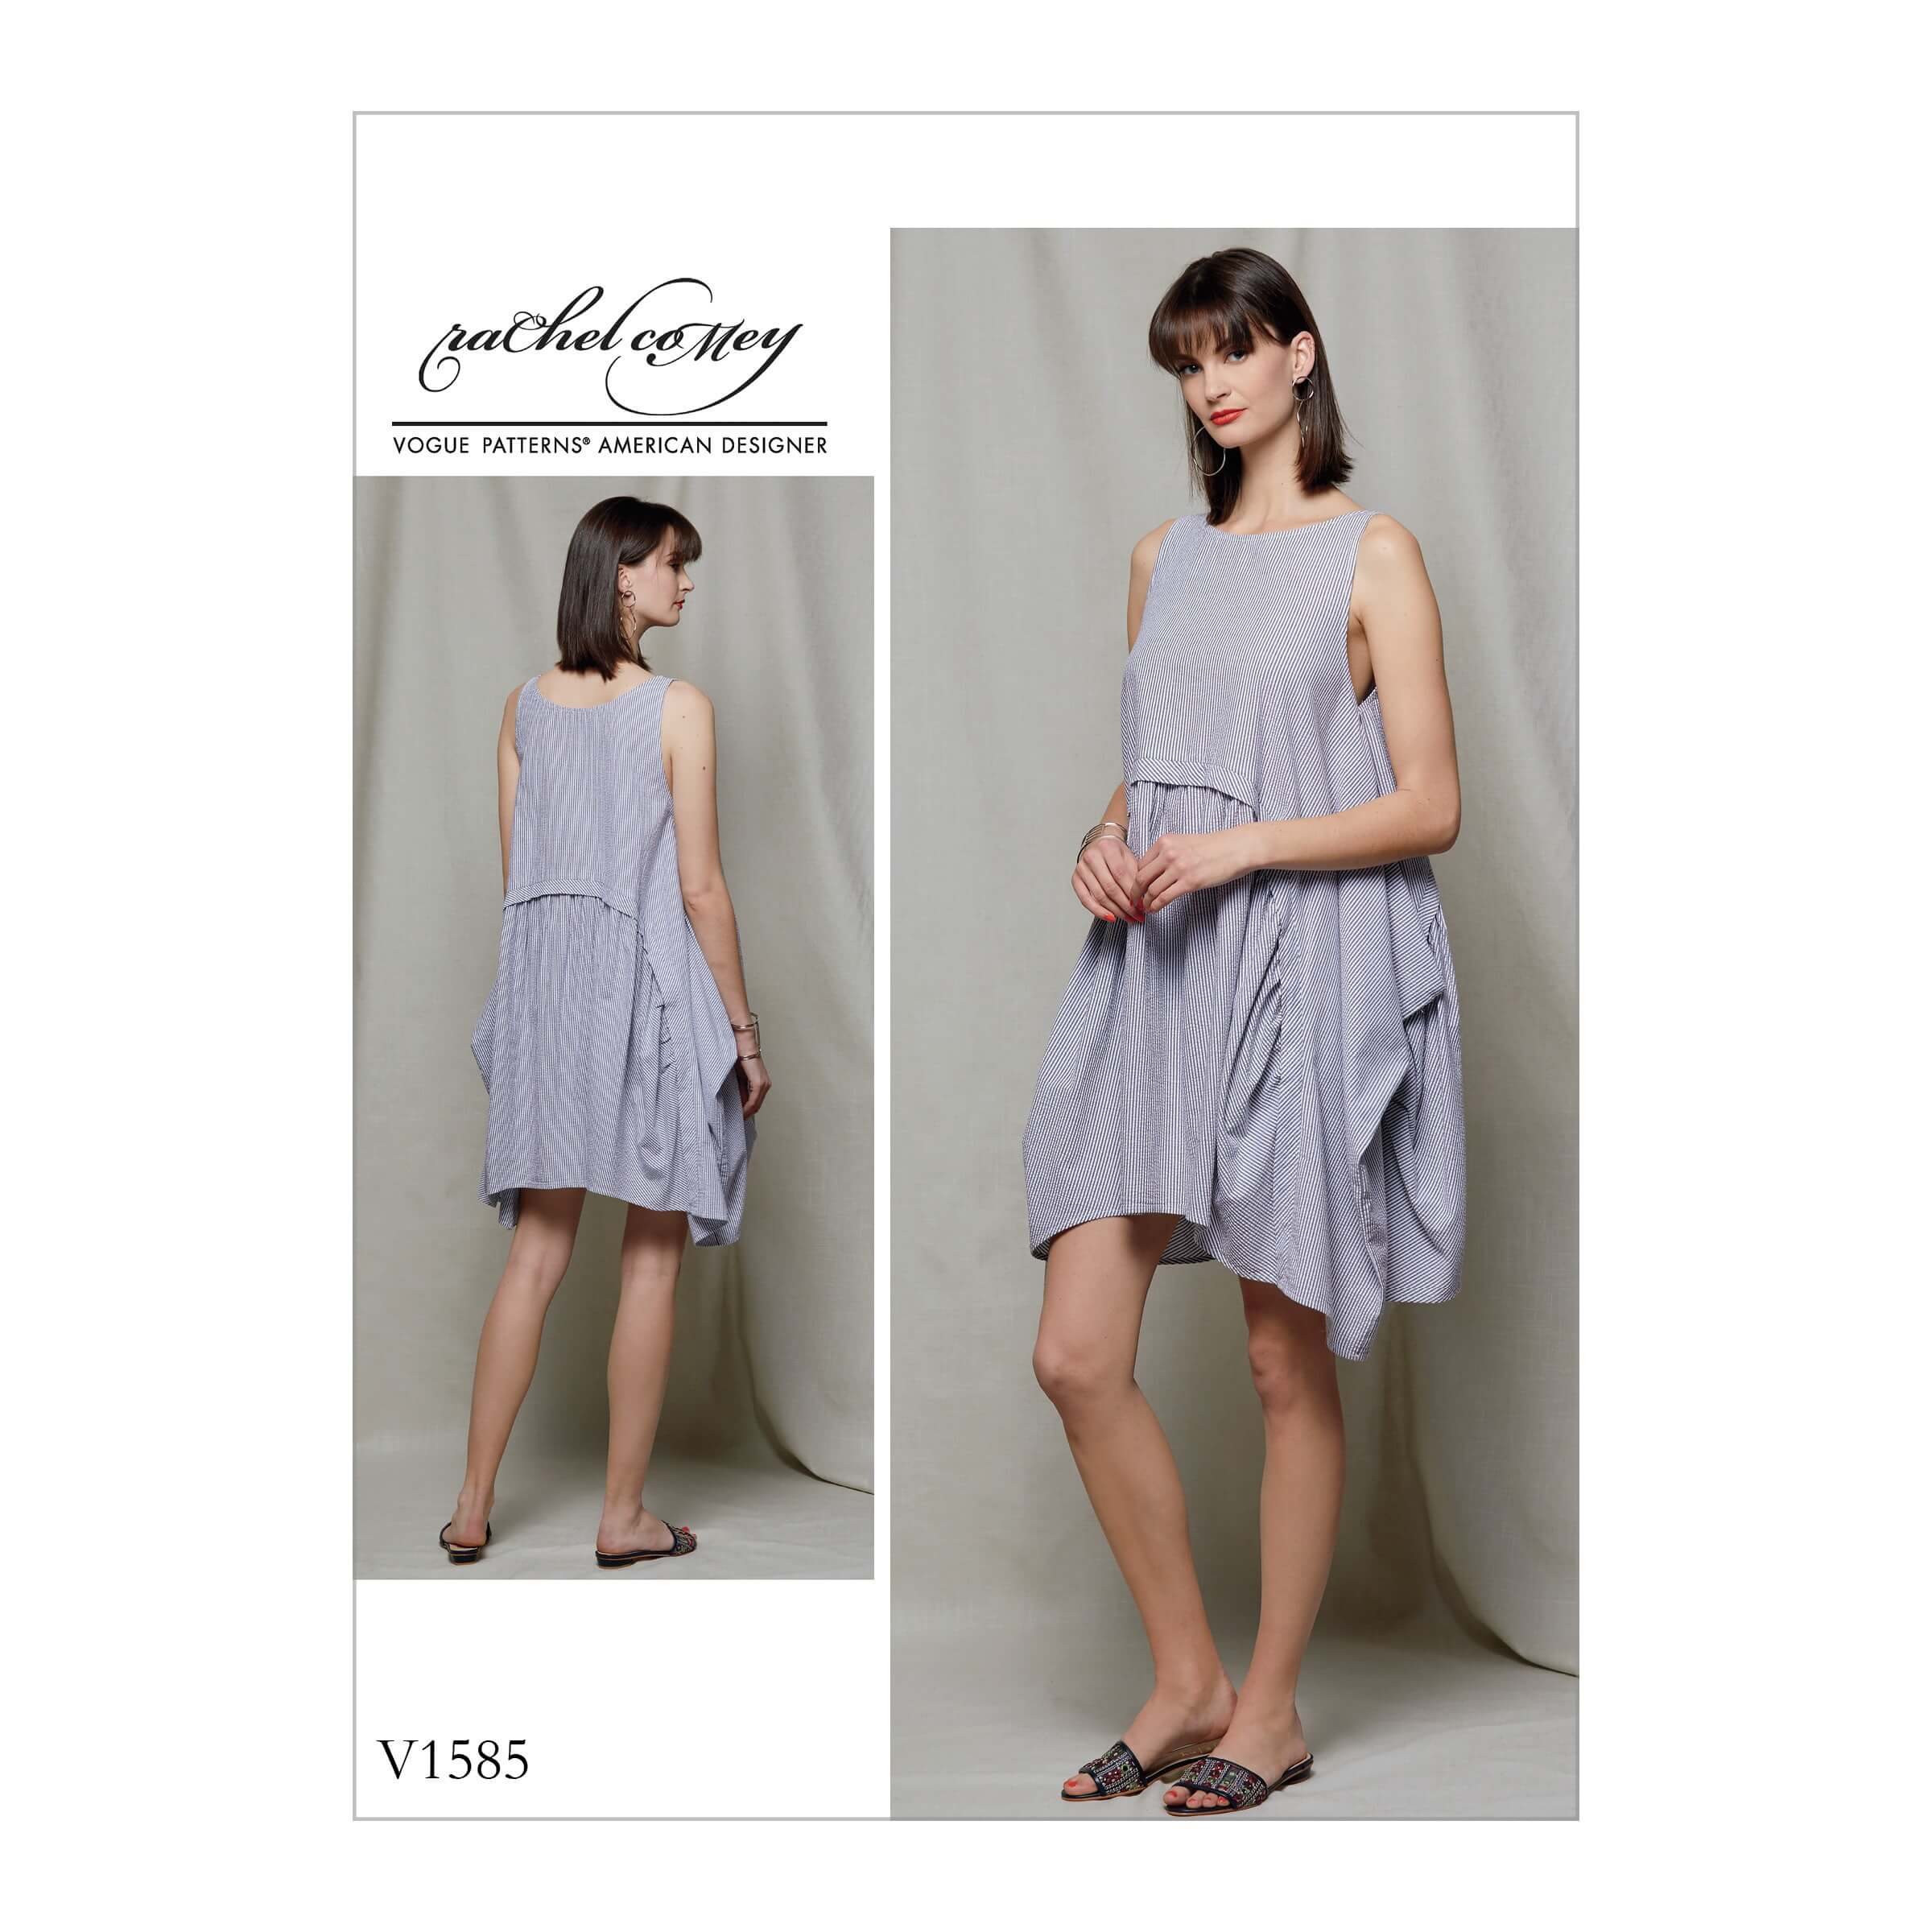 Vogue Sewing Pattern V1585 Women's Dress with Drape and Gather Details